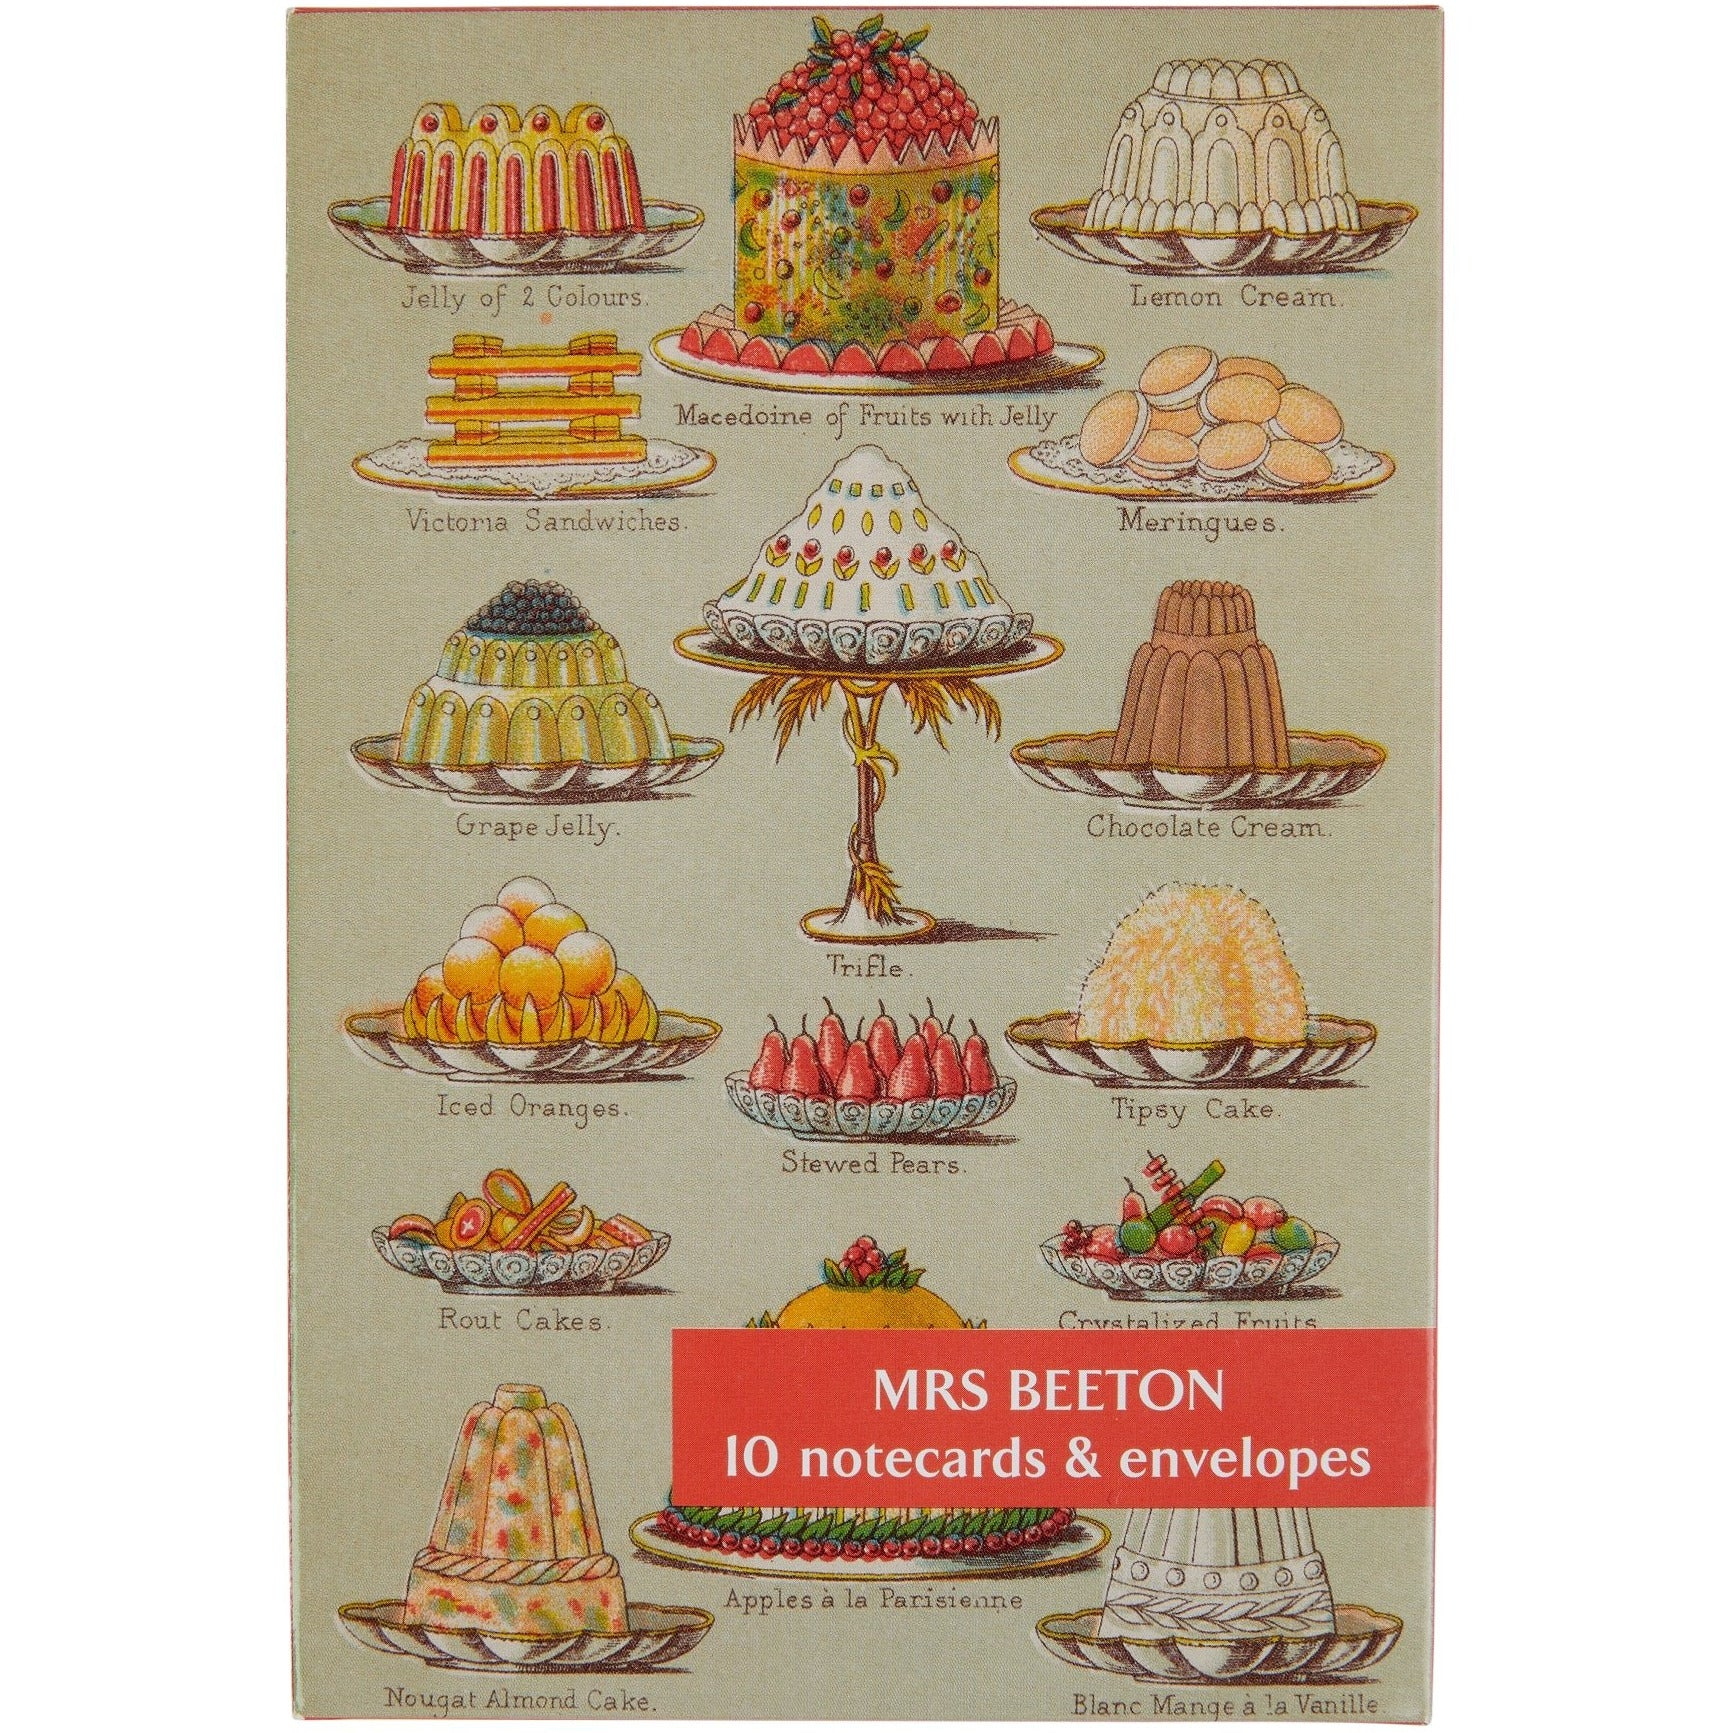 Featured image for the project: Mrs Beeton's Book of Household Management - notecard pack